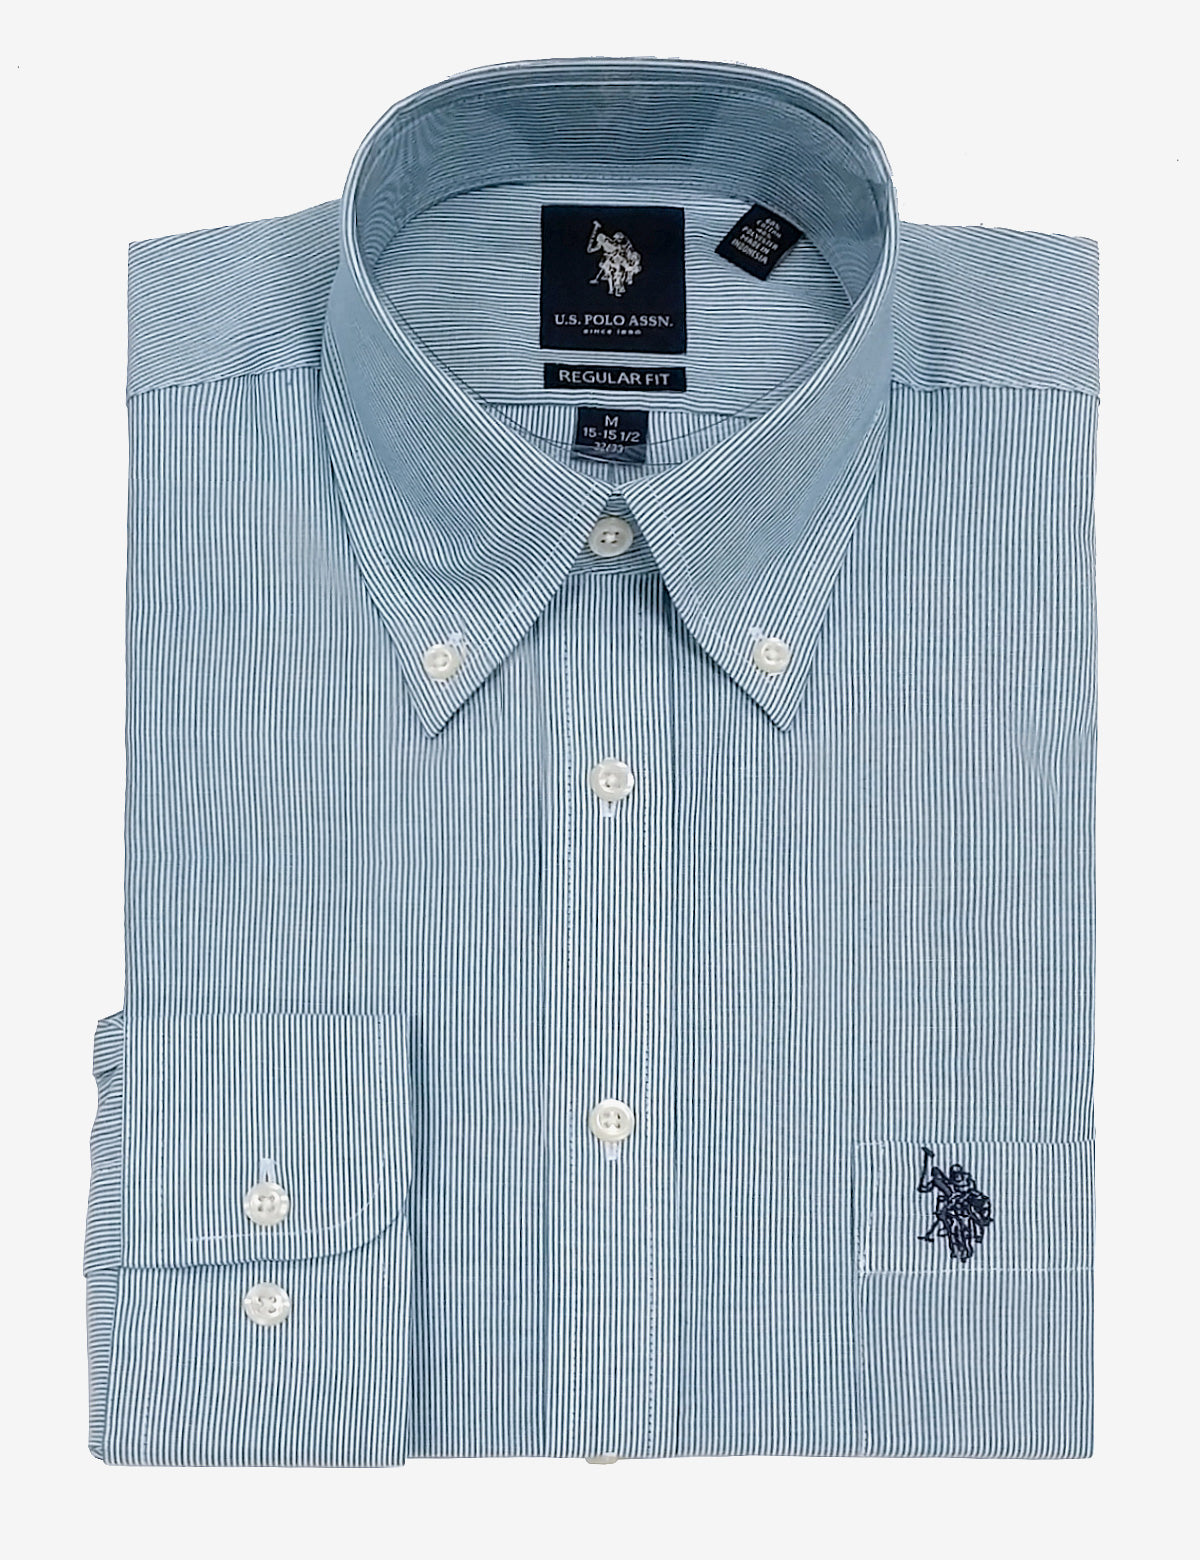 STRIPE DRESS SHIRT - U.S. Polo Assn.